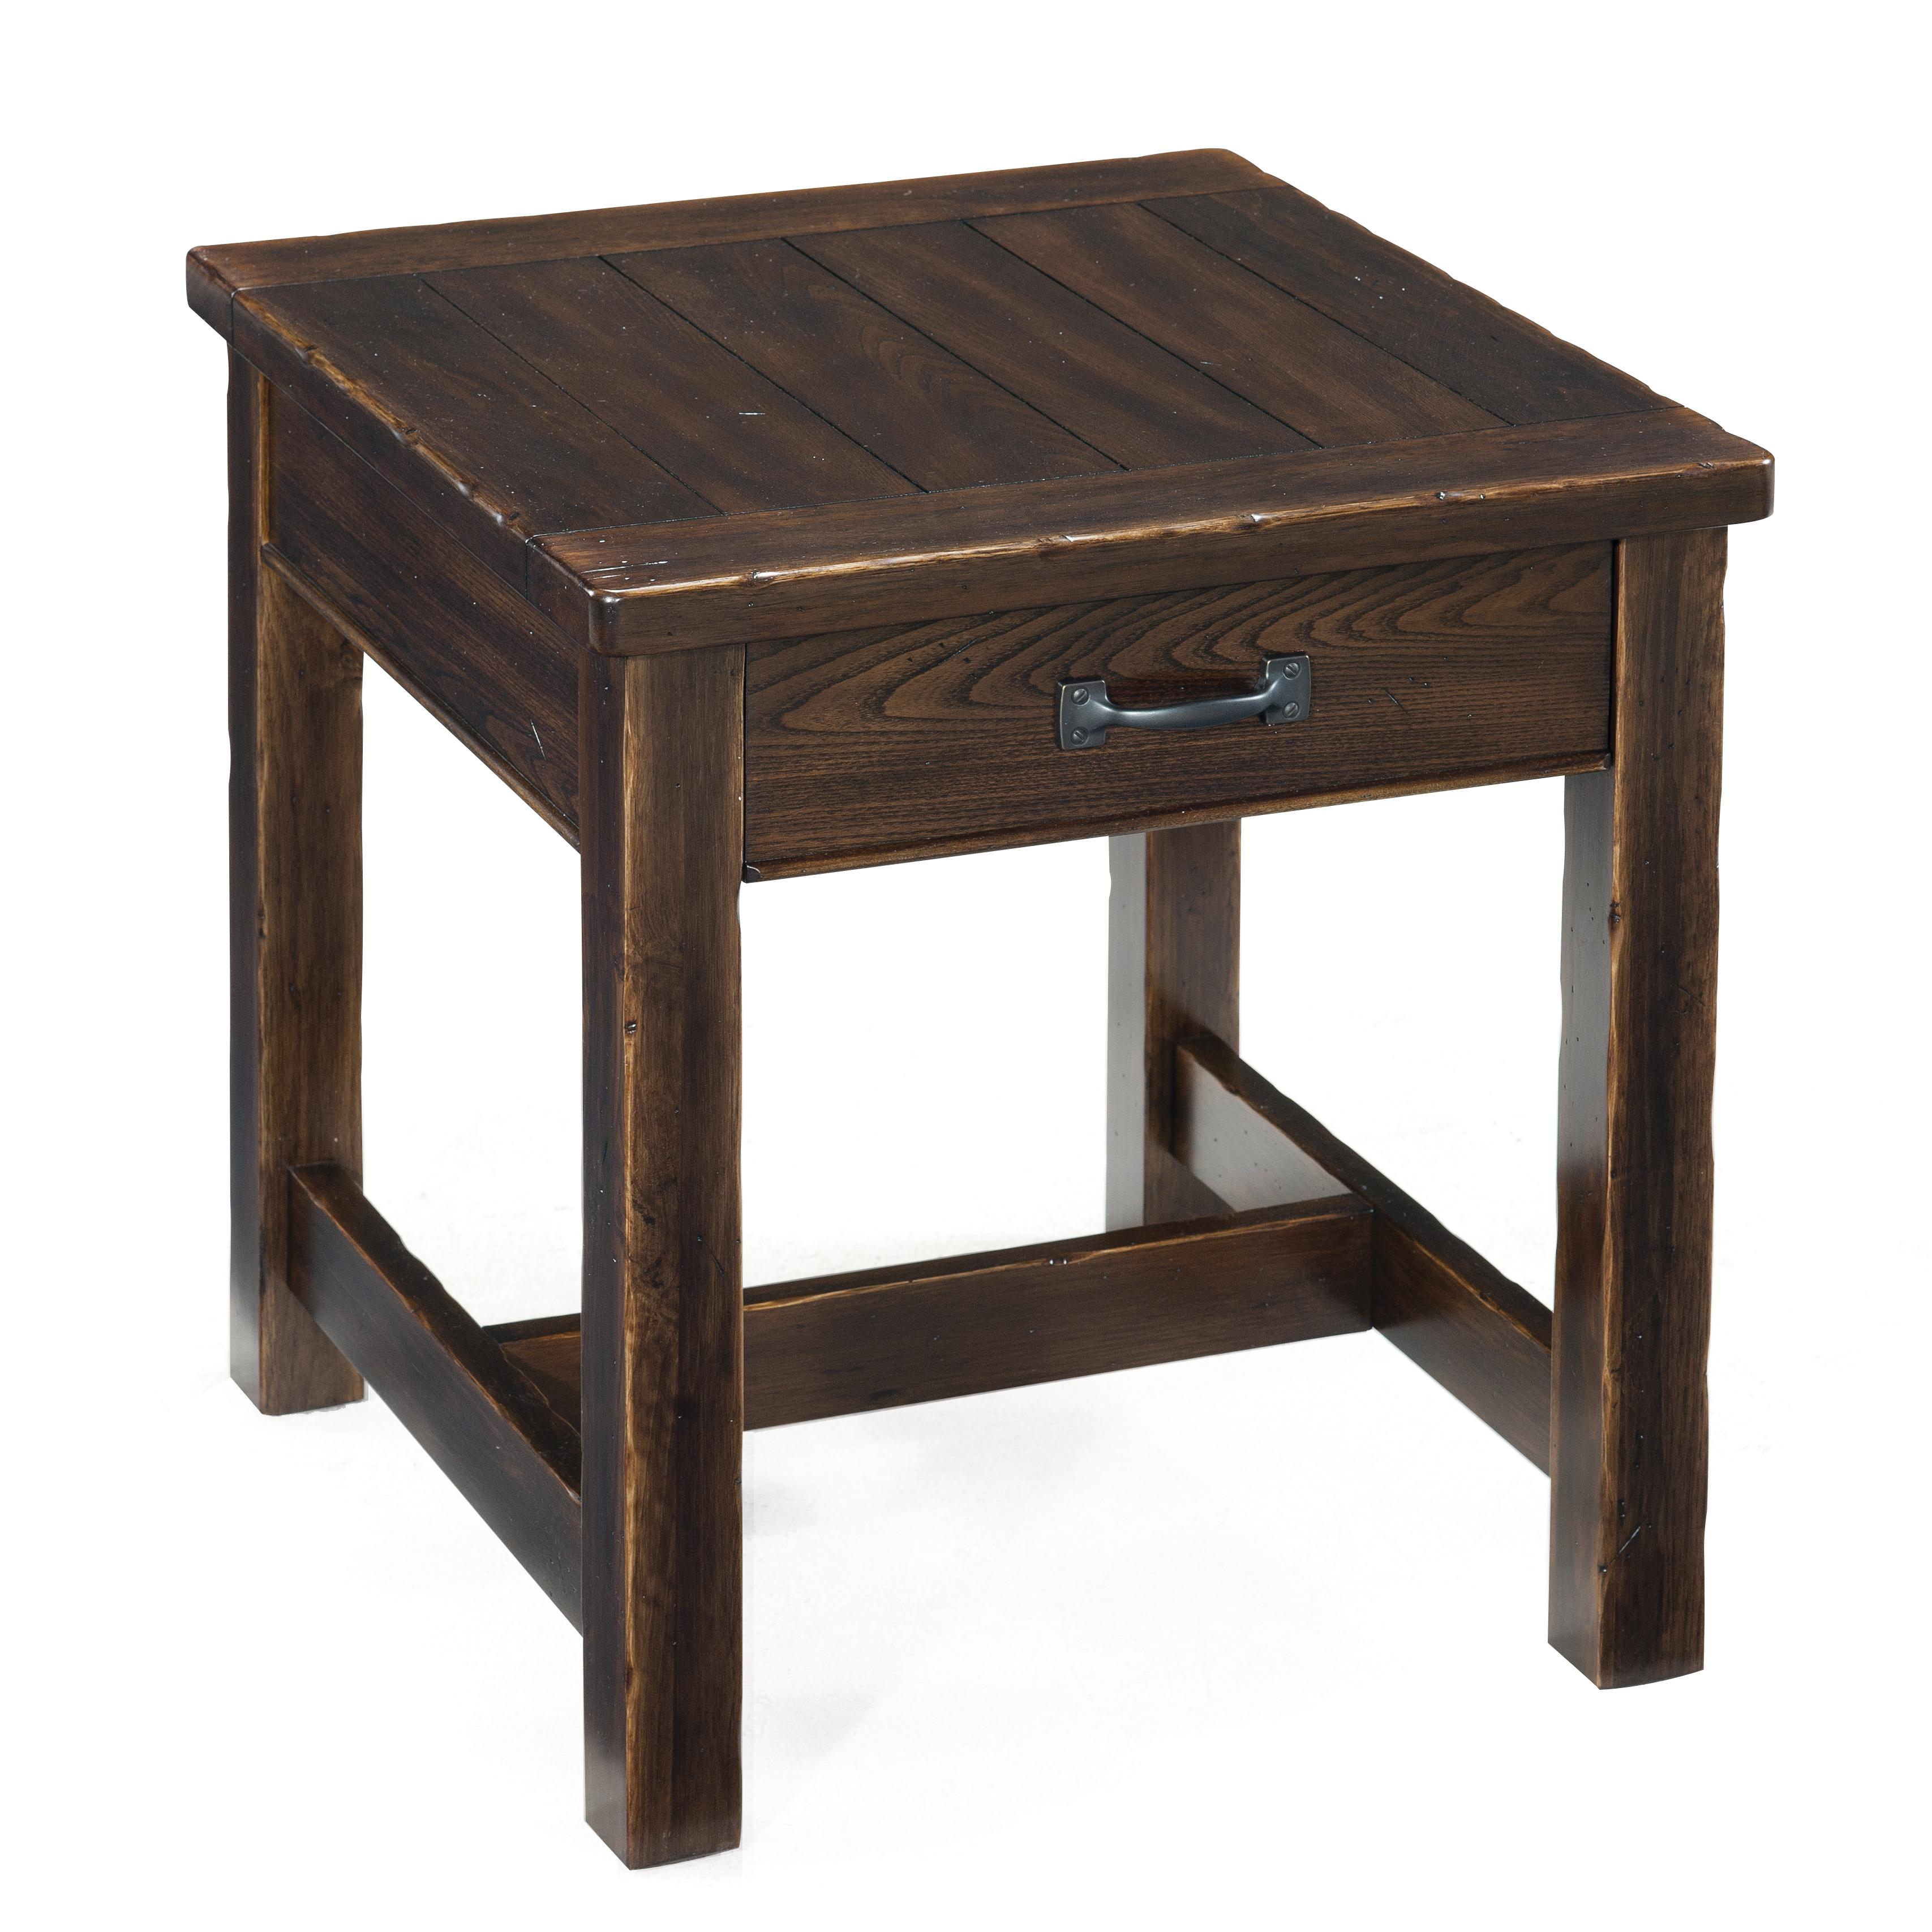 Magnussen Home Kinderton Rectangular End Table - Item Number: T2398-03